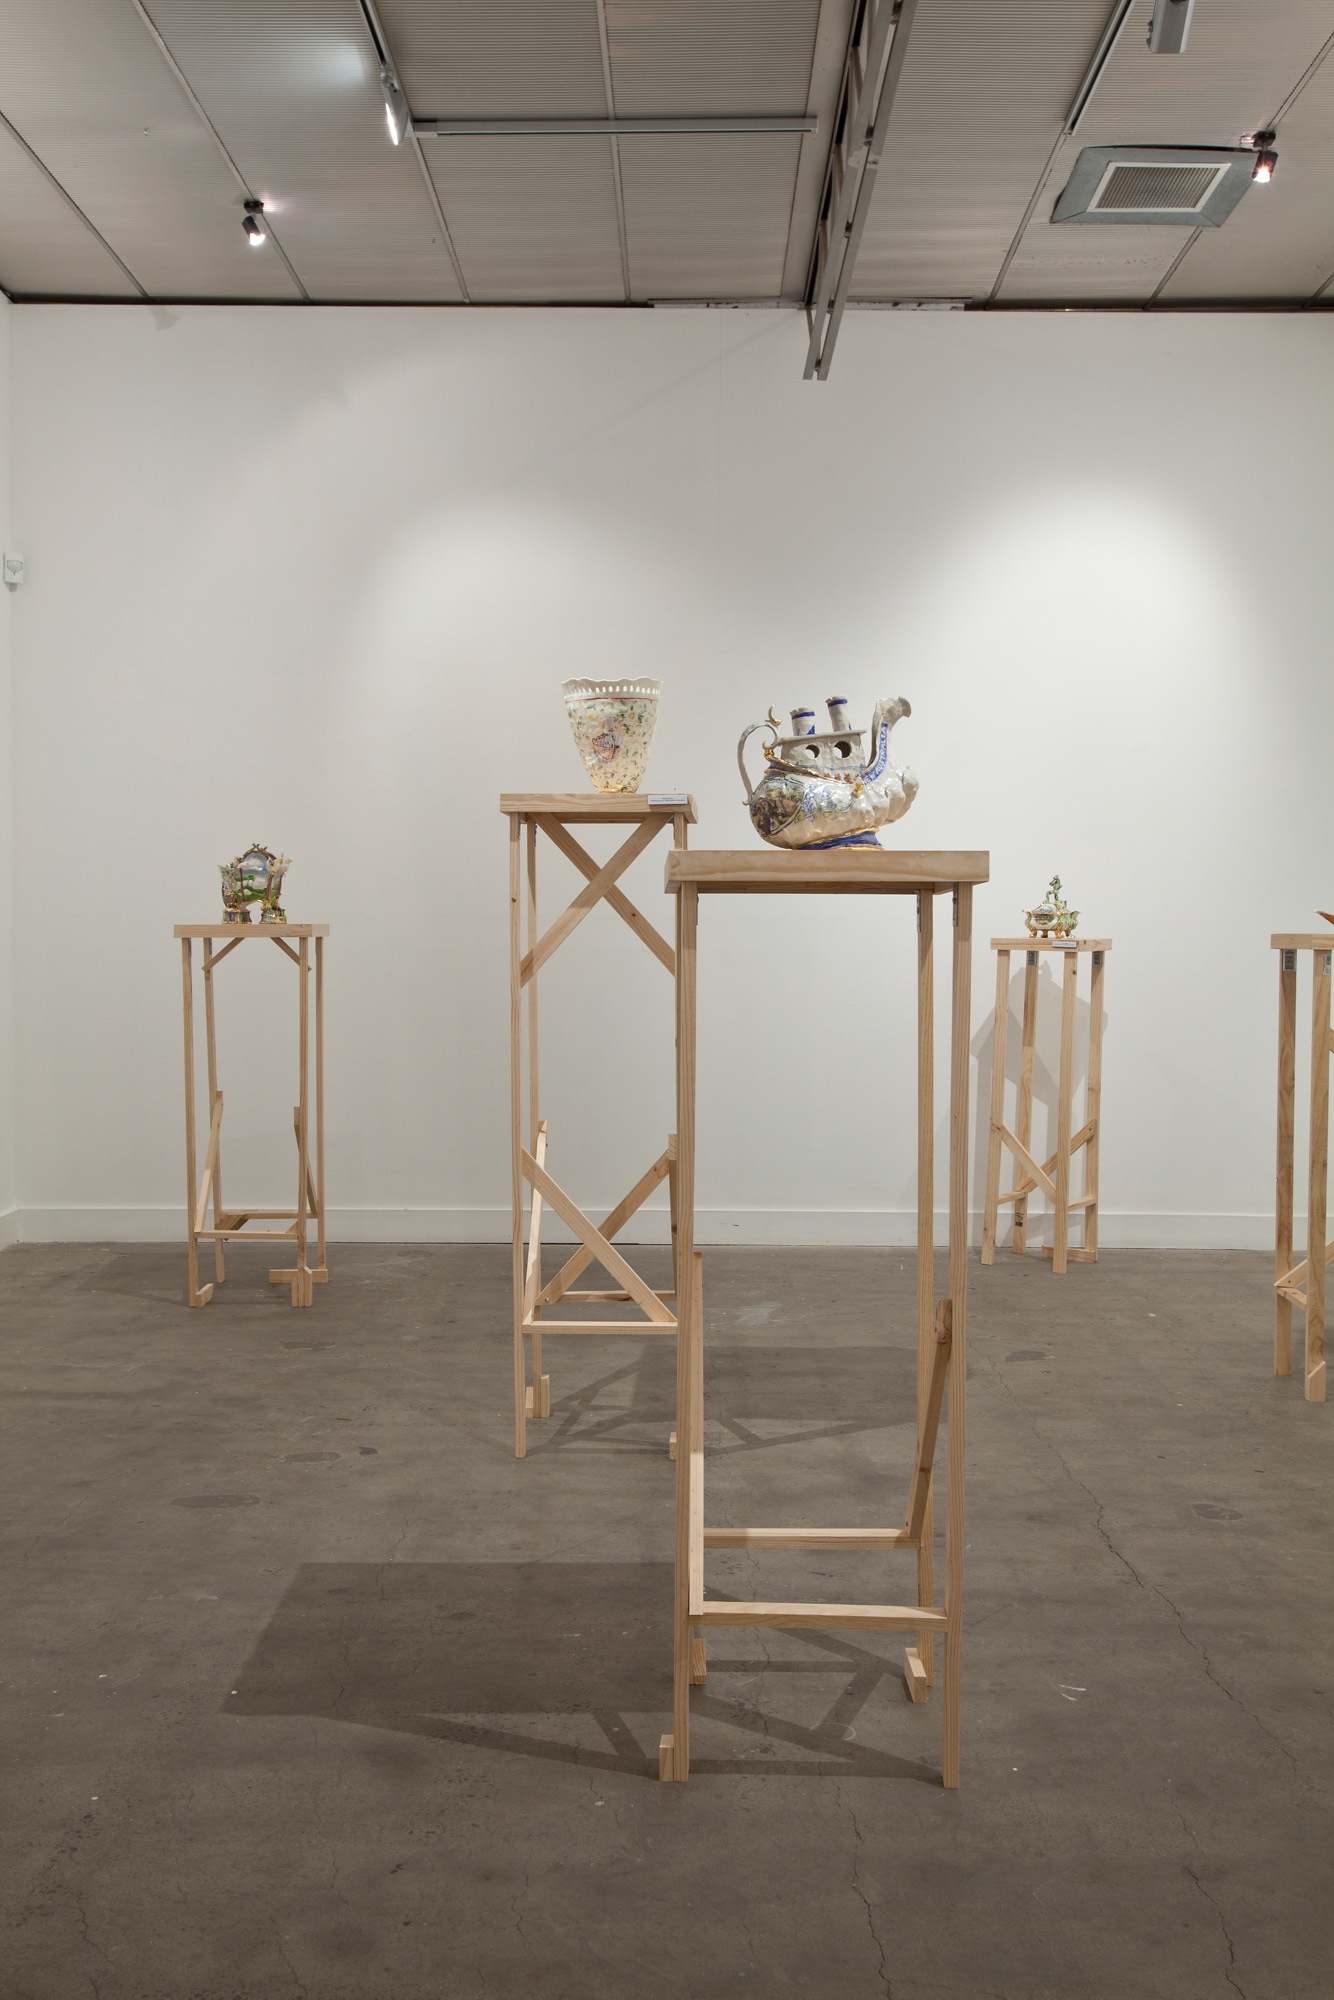 Vessel 2011, at Nellie Castan Gallery (2)